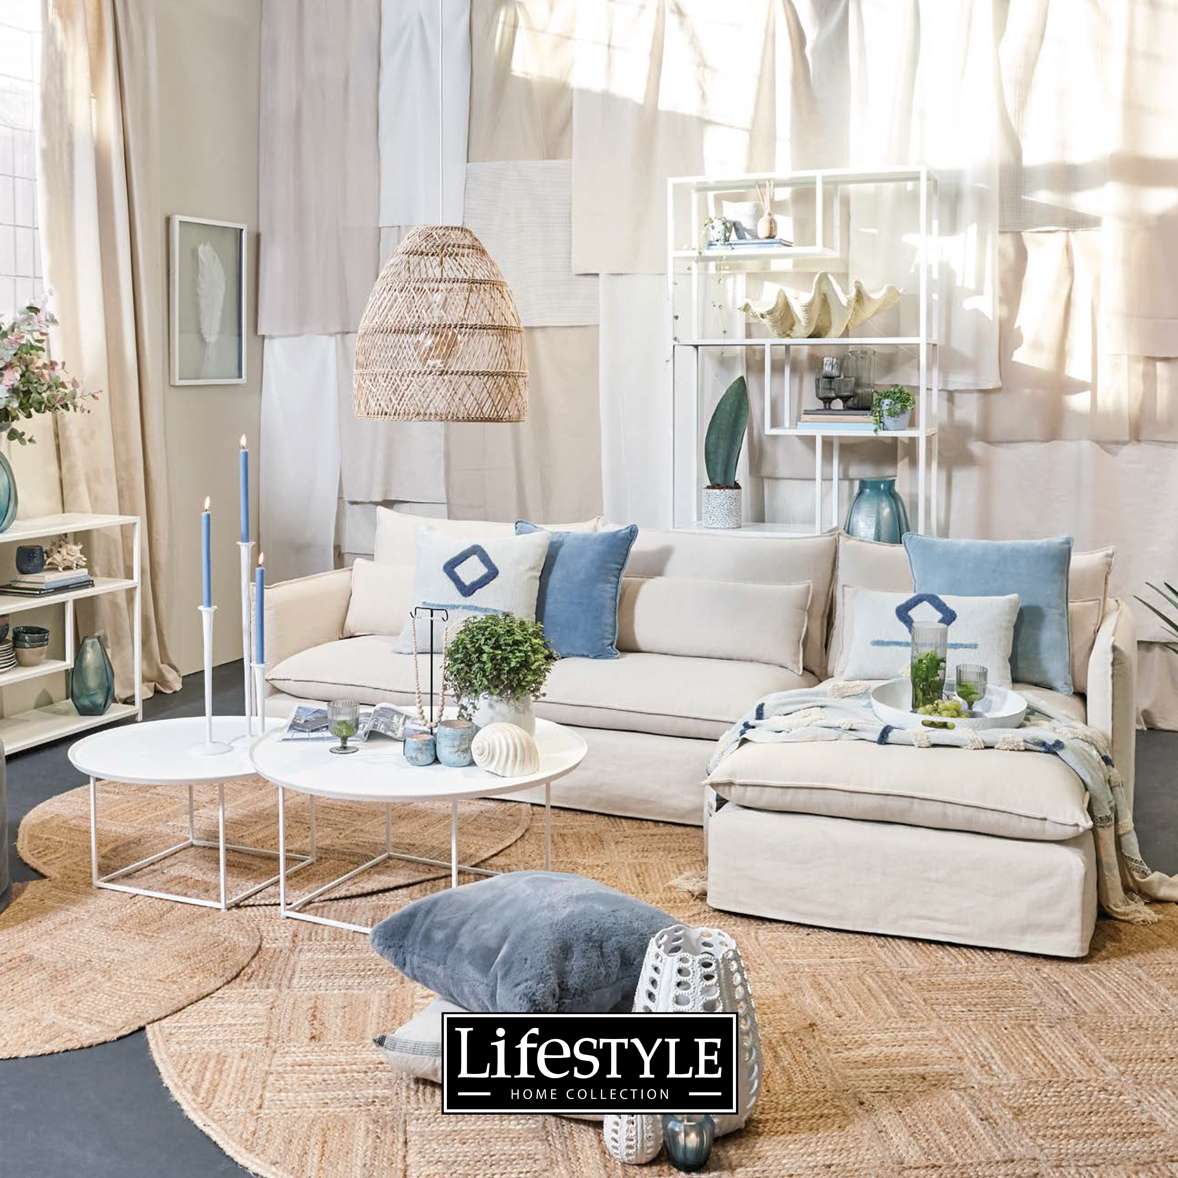 Inspiration » LifeStyle - Home Collection